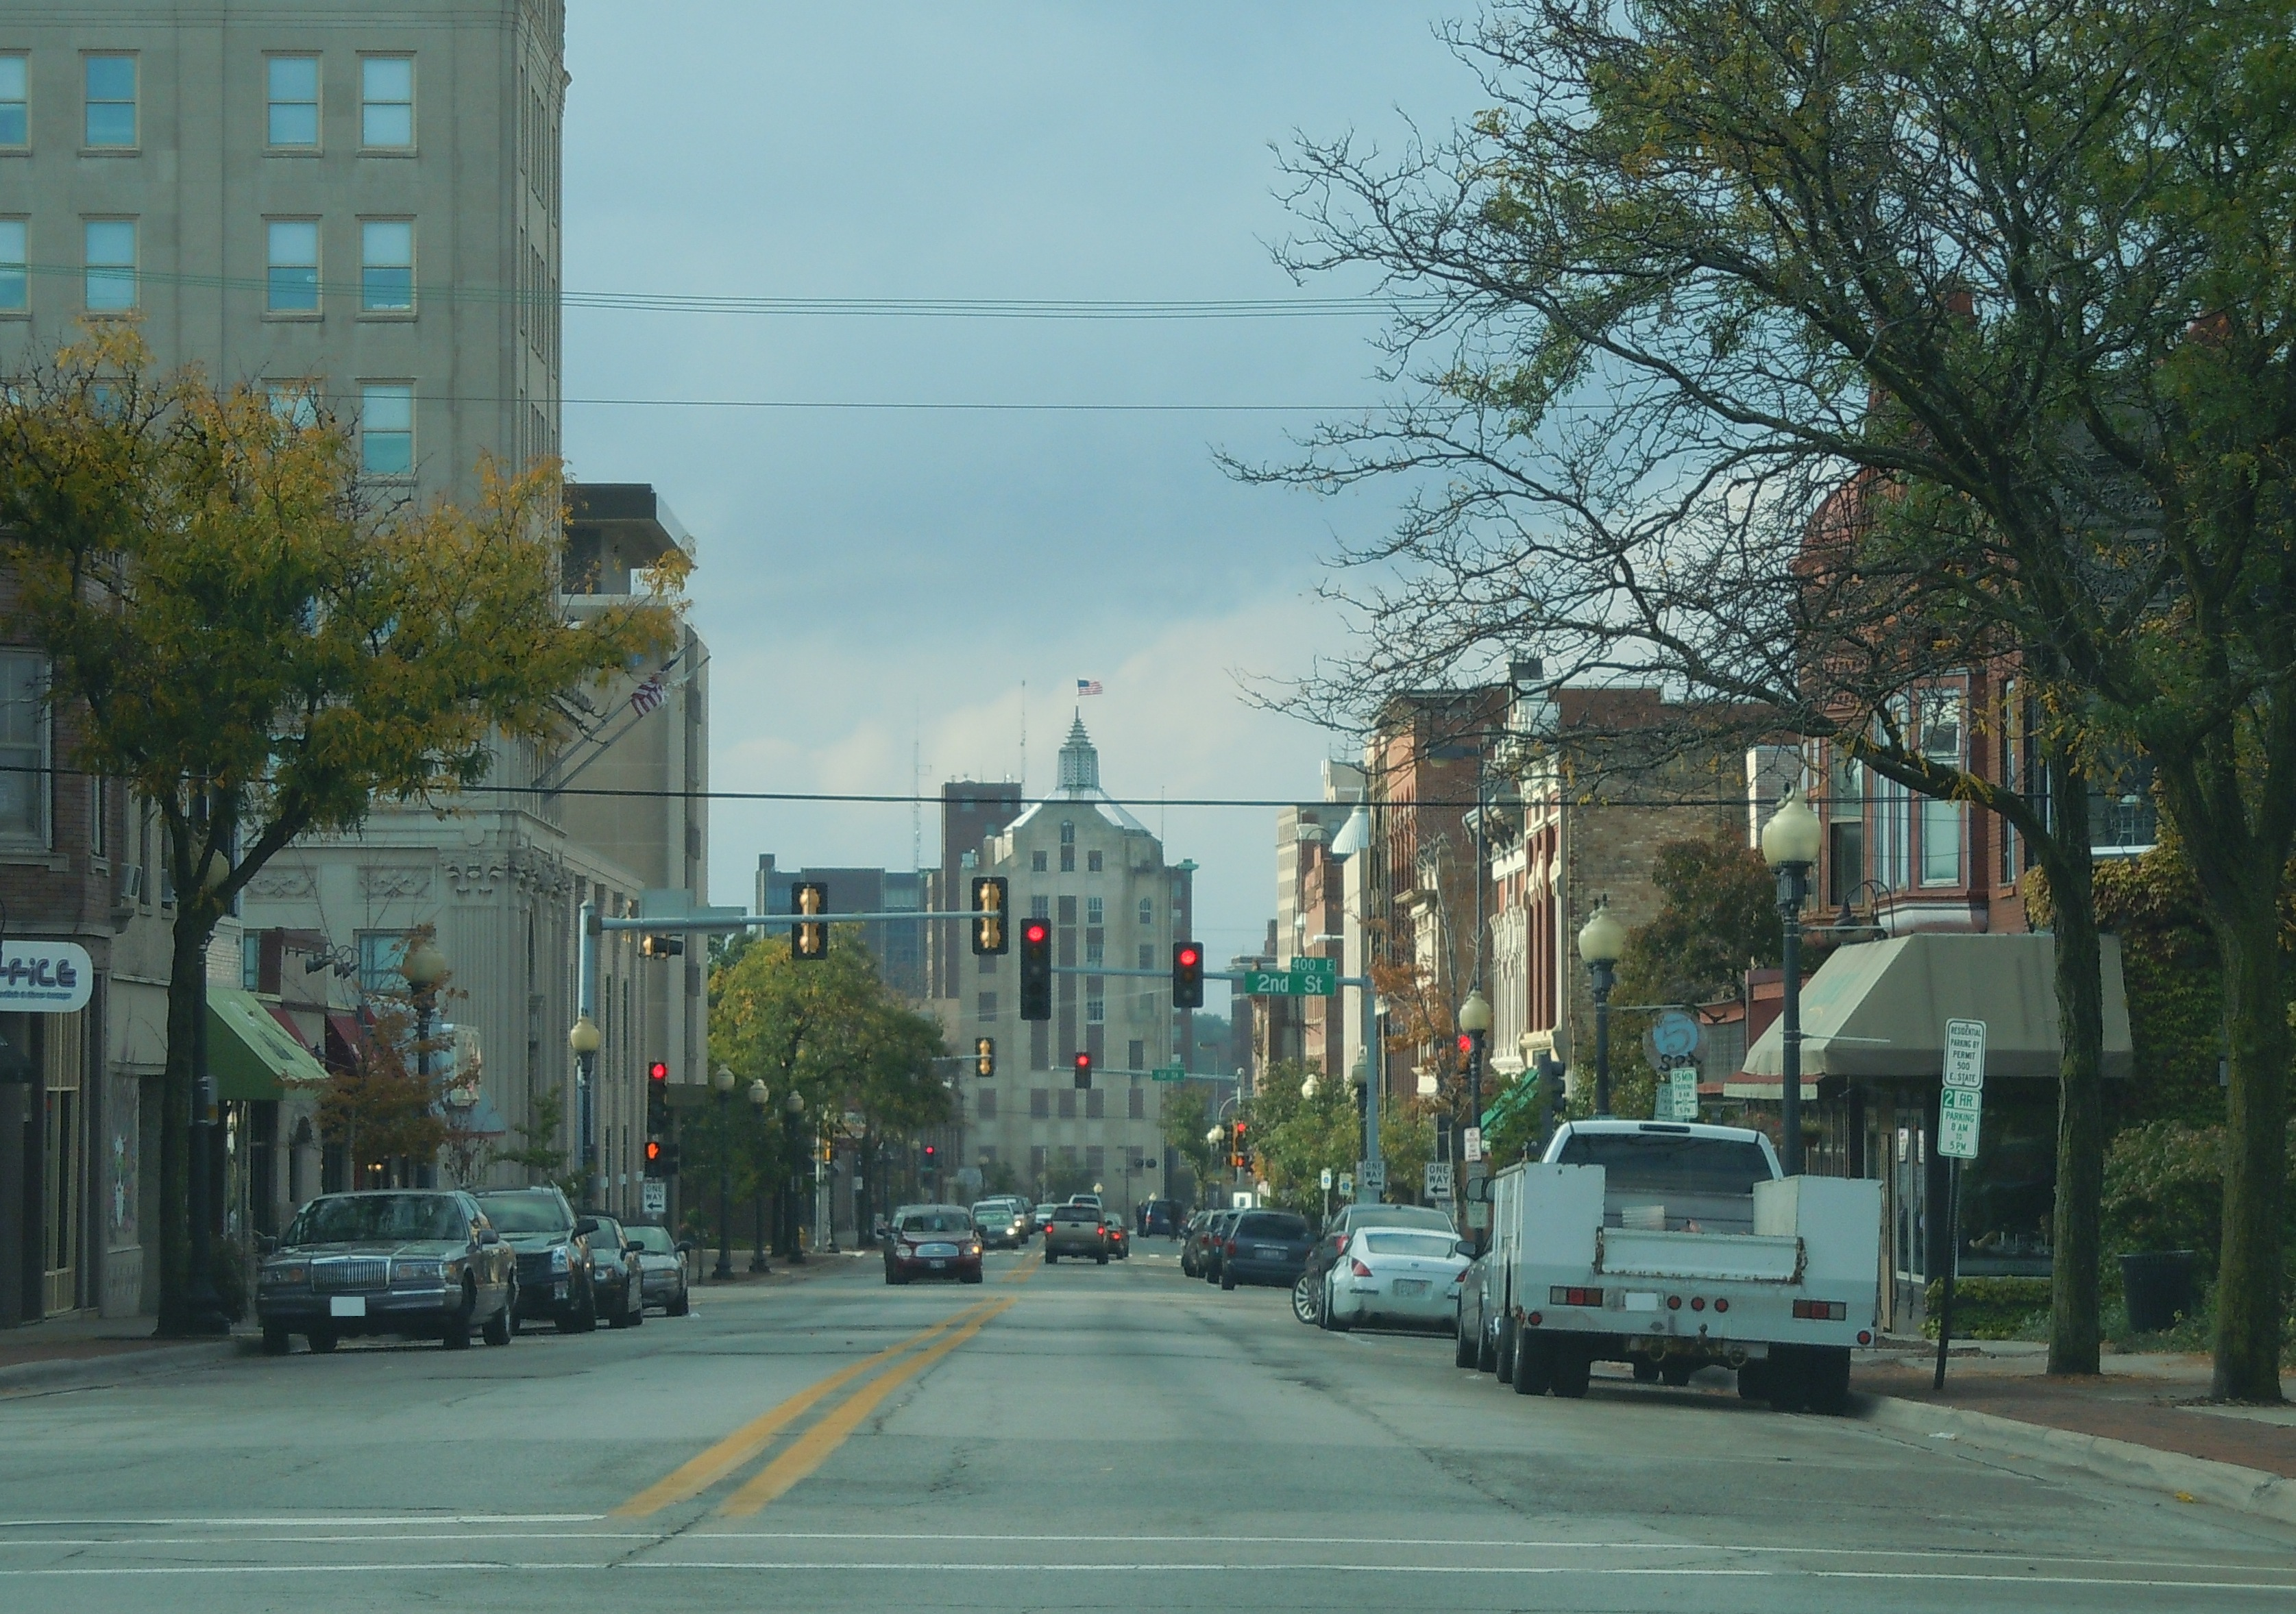 The Downtown East State Street Corridor Has Been A Central Focus Of Revitalization Efforts